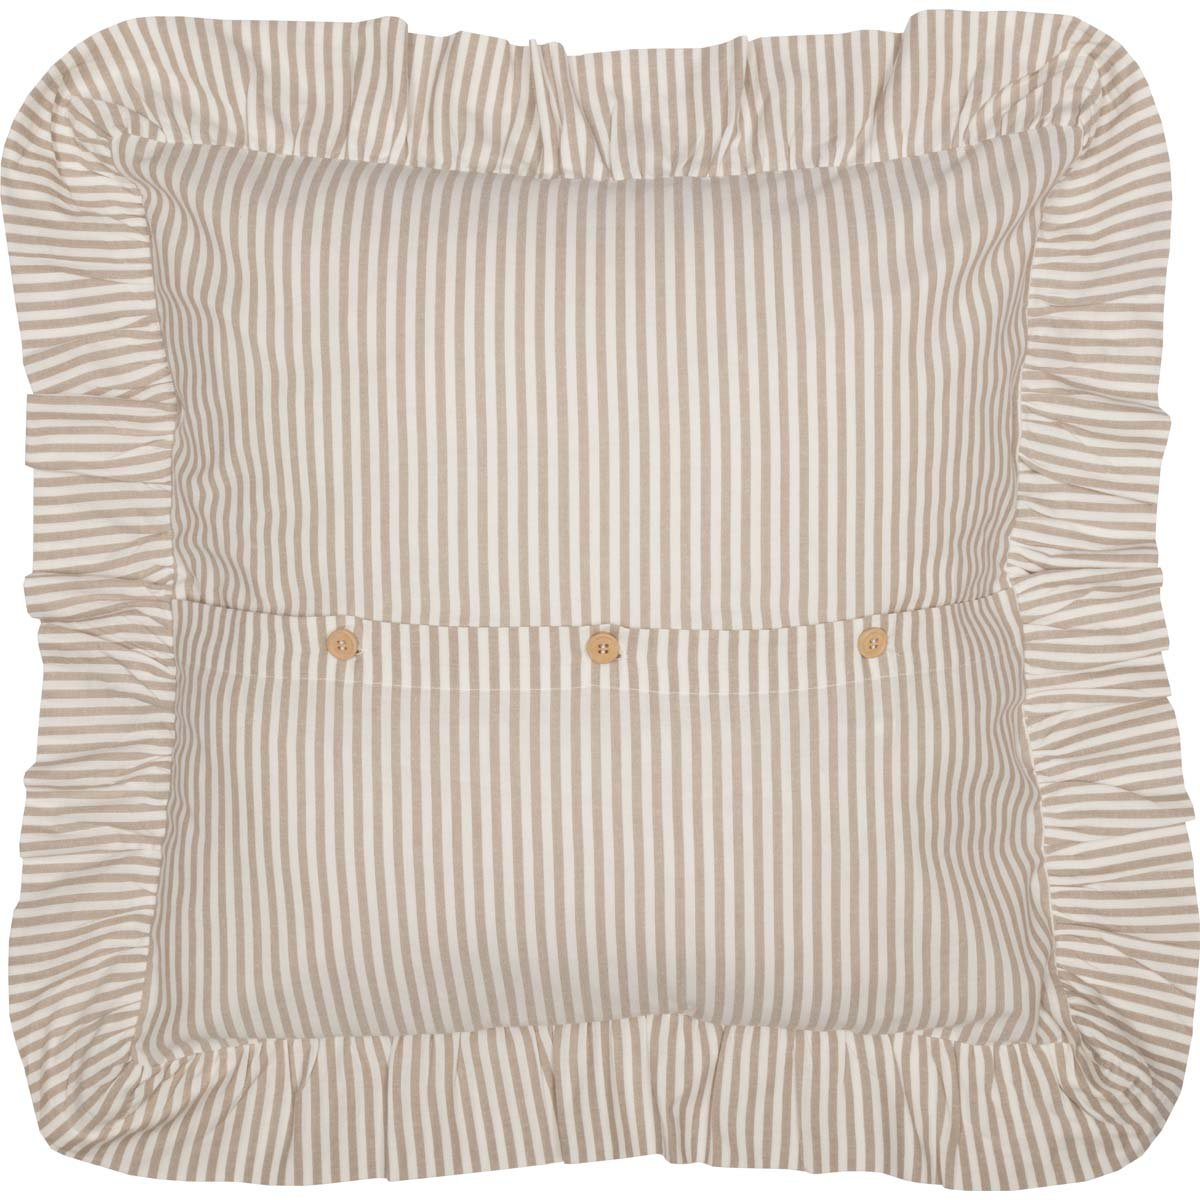 Piper Classics Farmhouse Ticking Stripe Duvet Cover Bedding Soft Comfortable Farmhouse Bedroom Decor Queen 92x92 Comforter Cover w//Twill Ties Beige Taupe /& Off-White